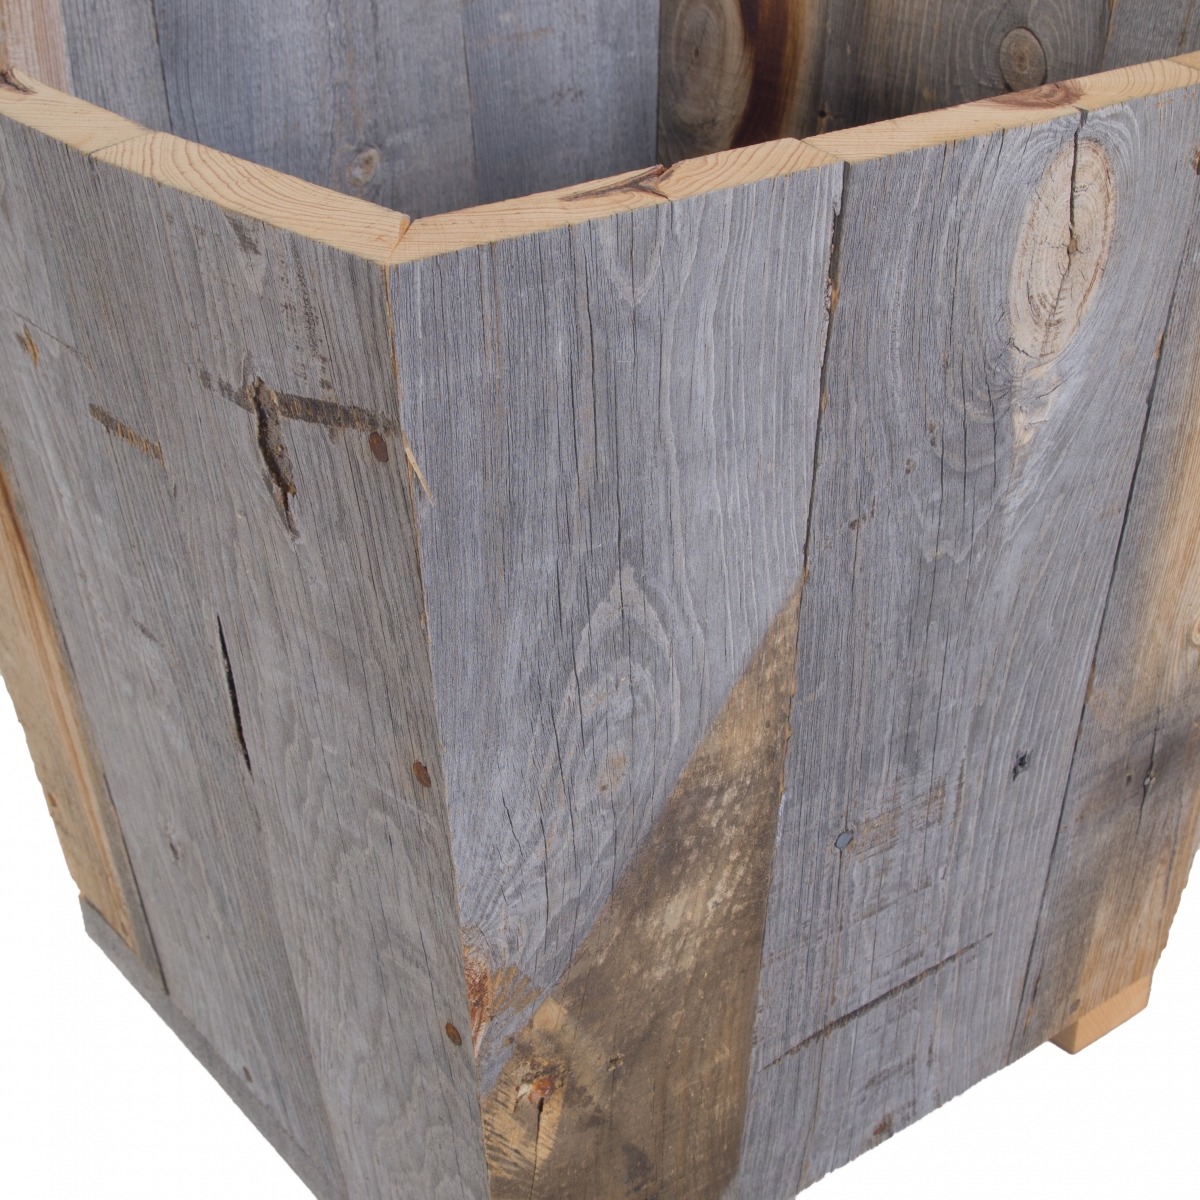 Interior pot / Barn wood